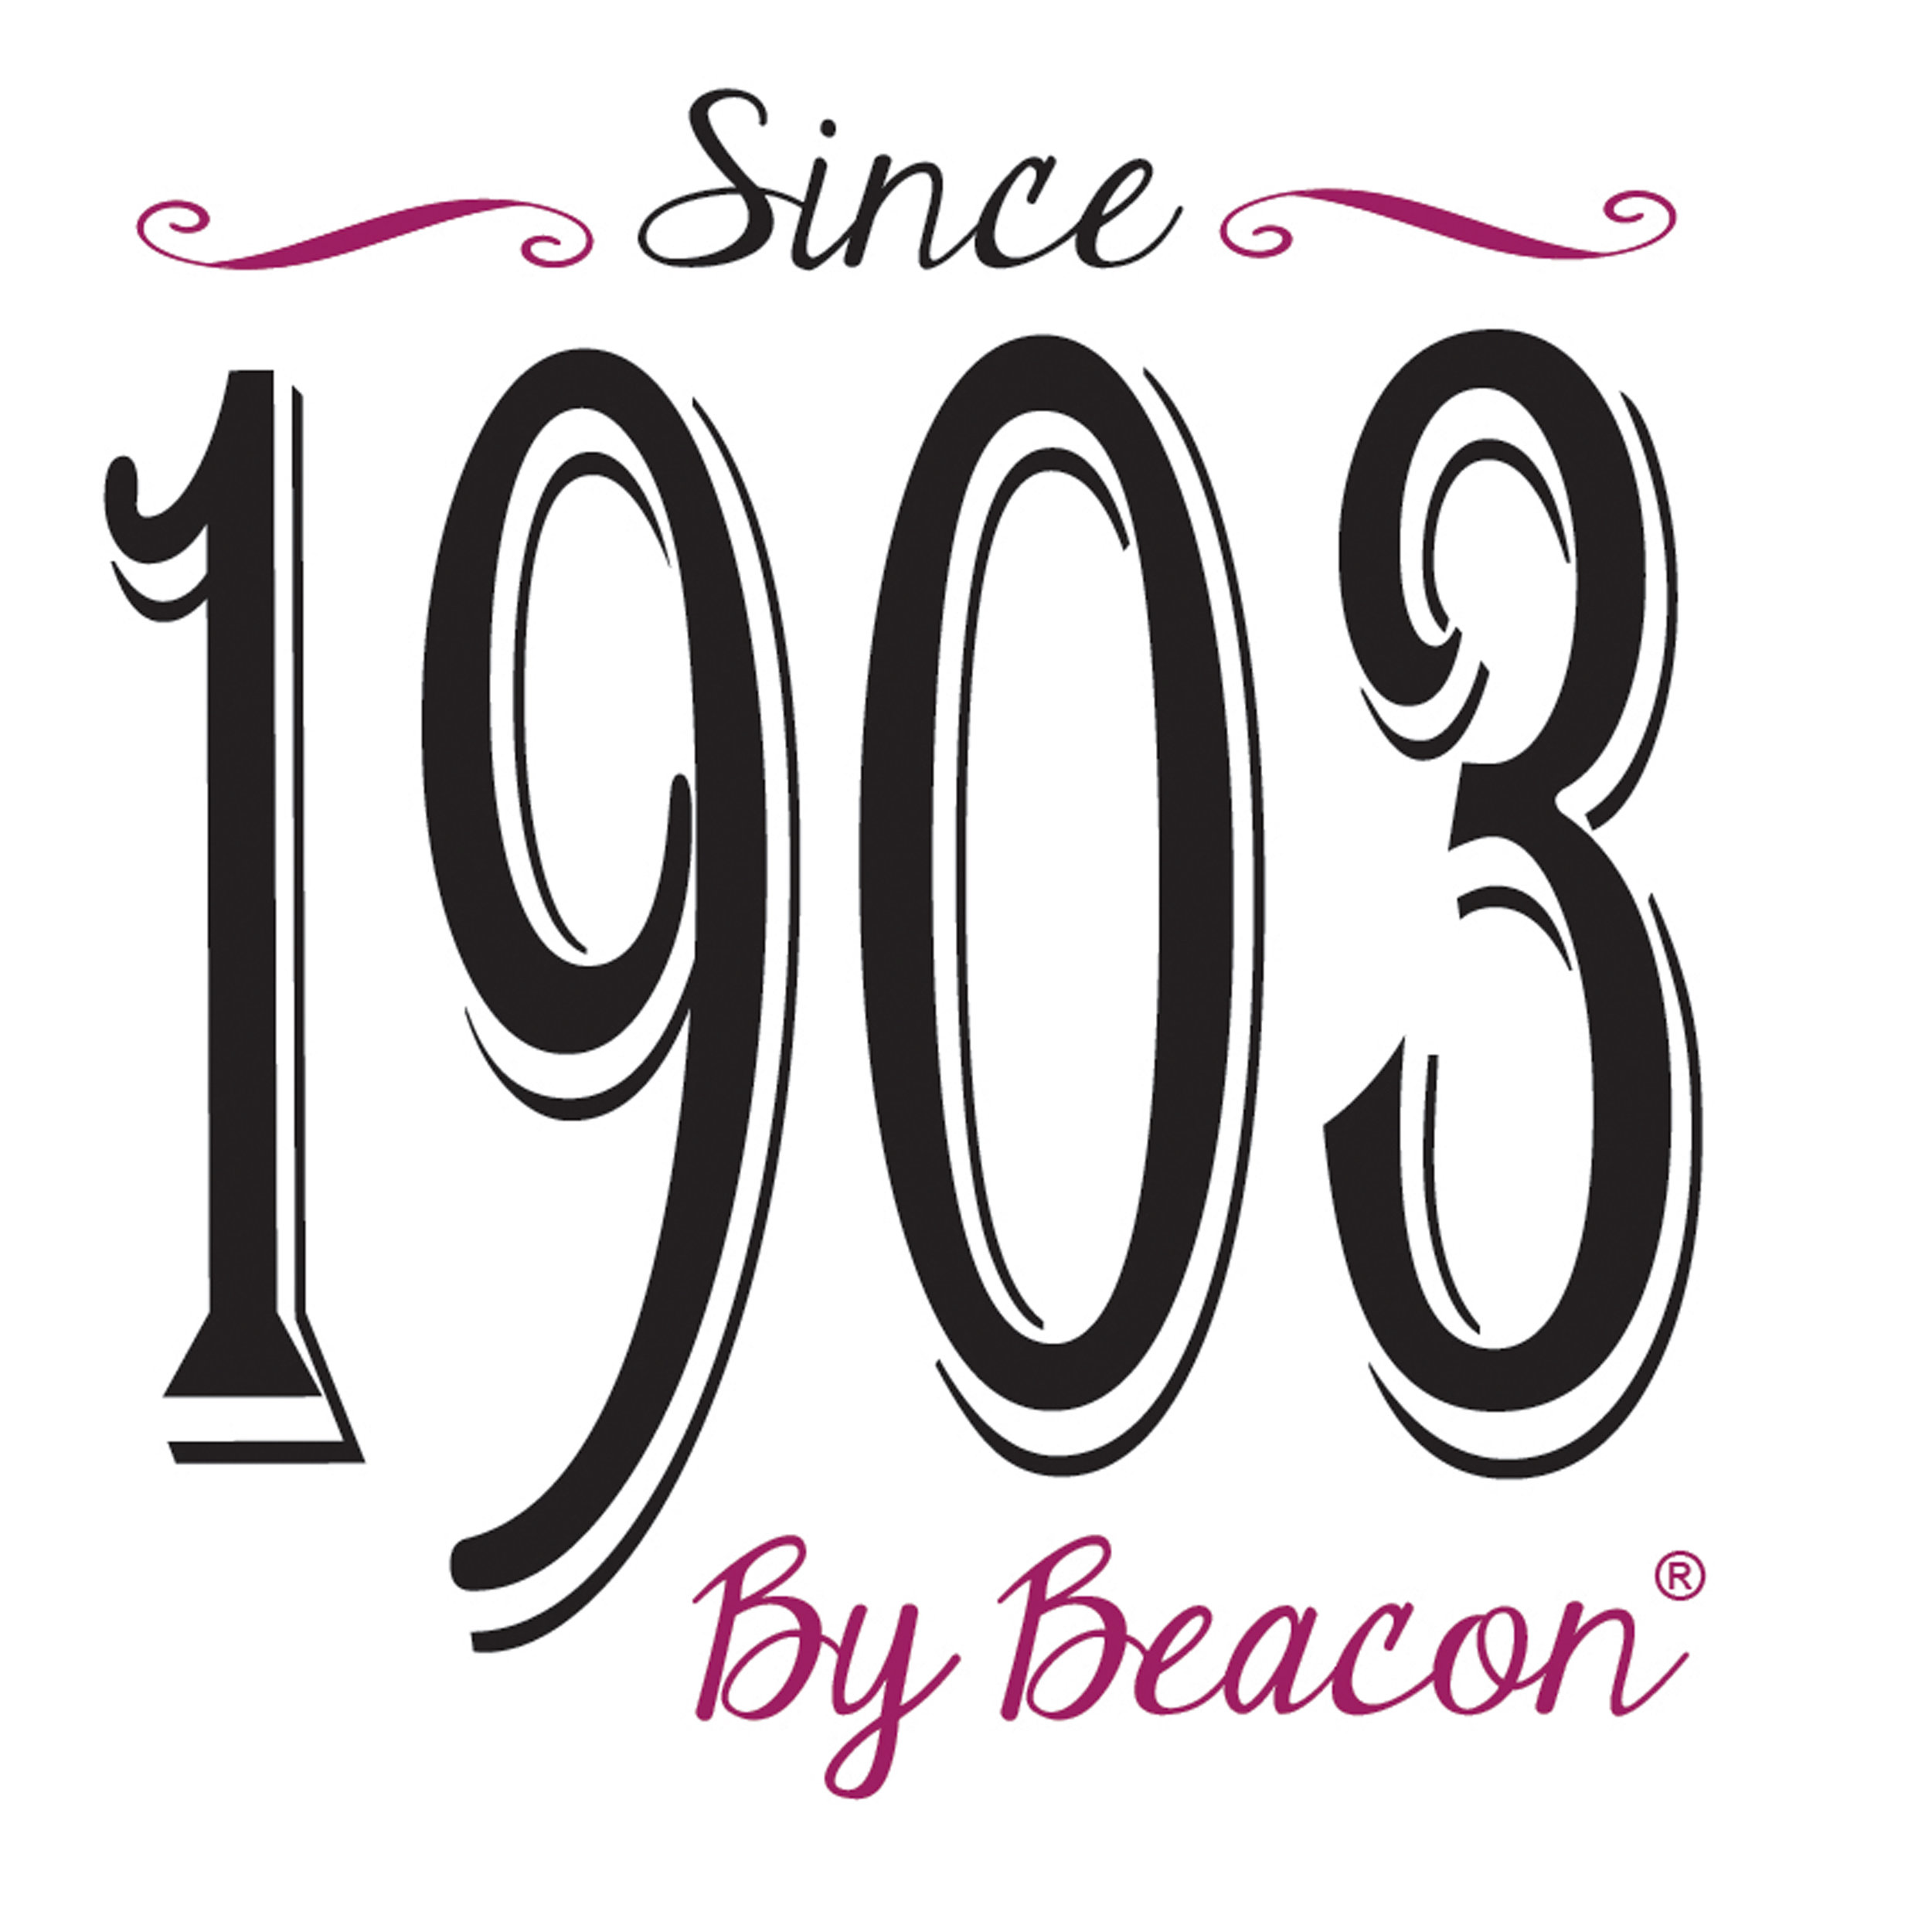 Since 1903 By Beacon Large.jpg